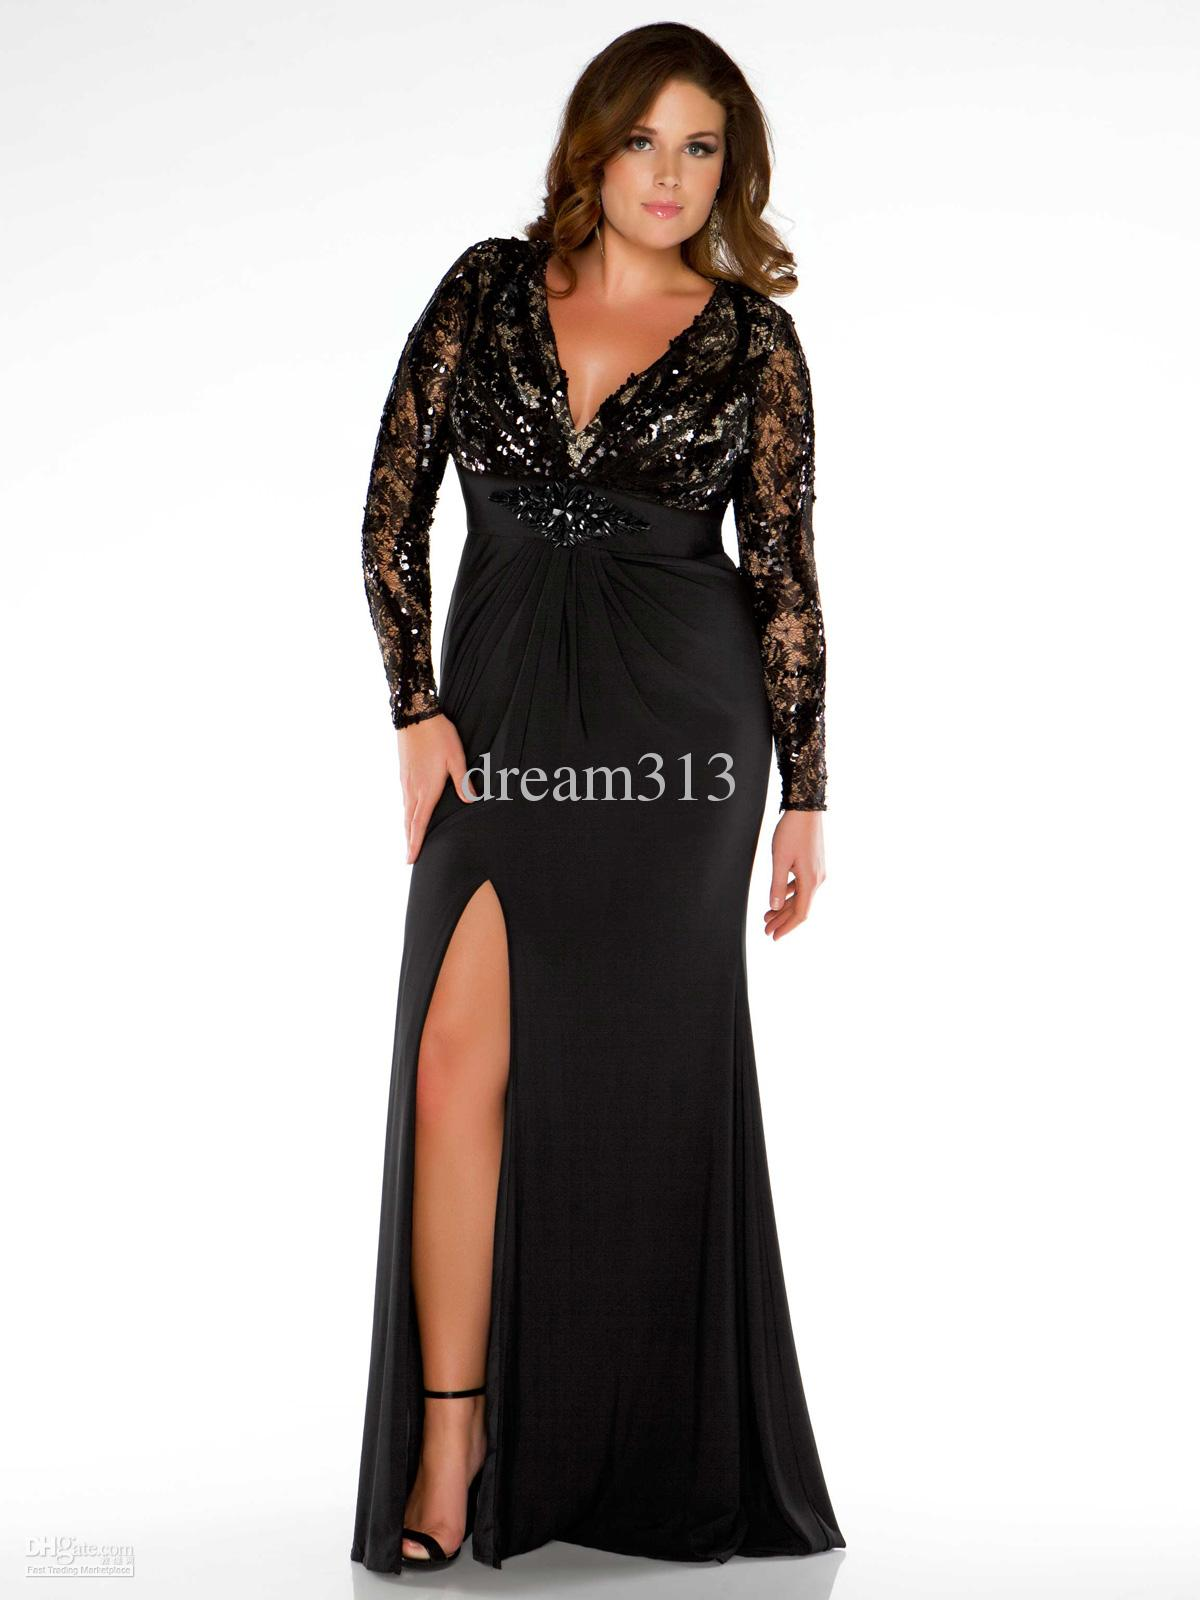 Long Sleeve Prom Dresses Plus Size Shopping Guide We